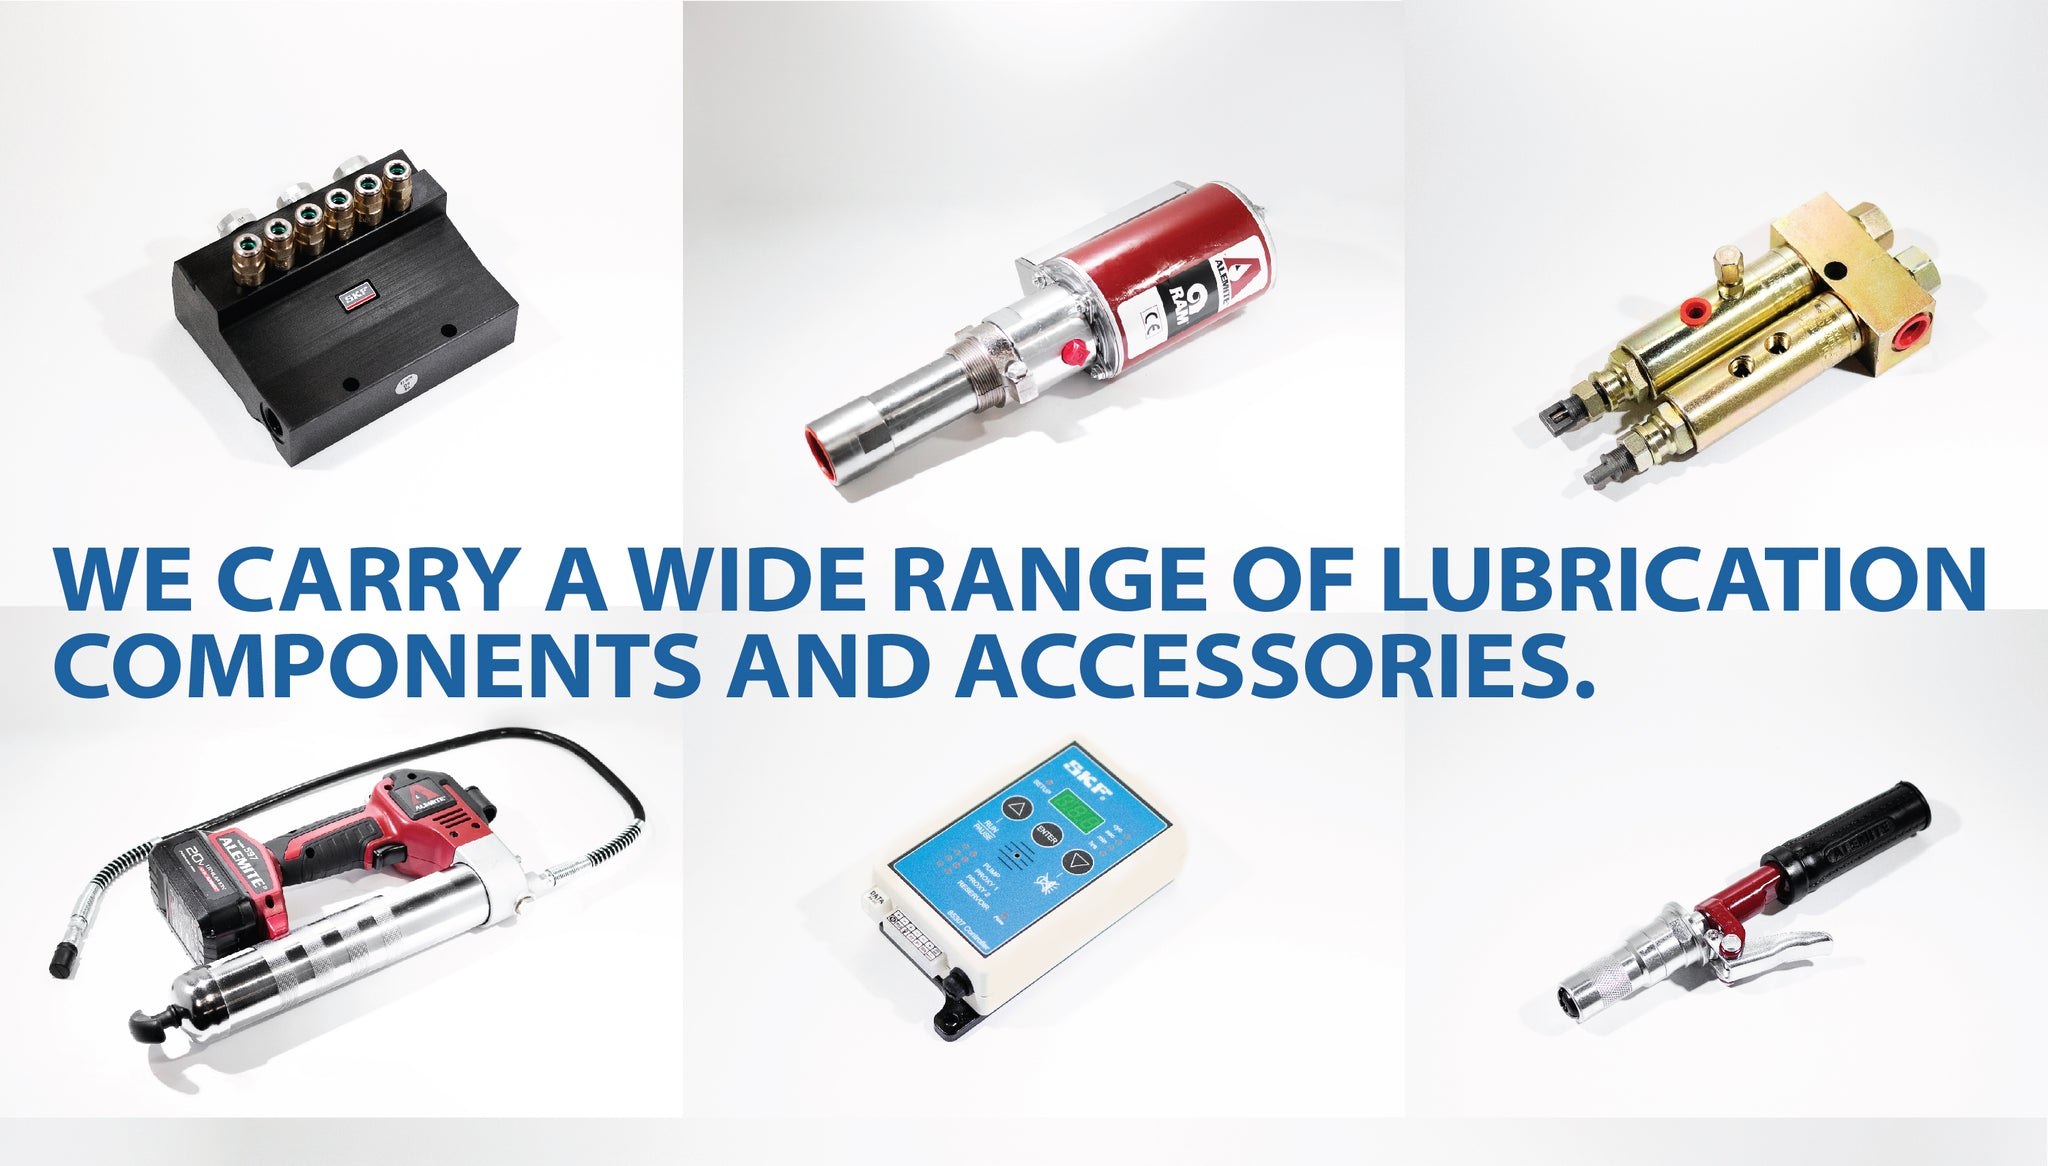 Lincoln lubrication SKF lubrication authorized distributor and service center South Carolina